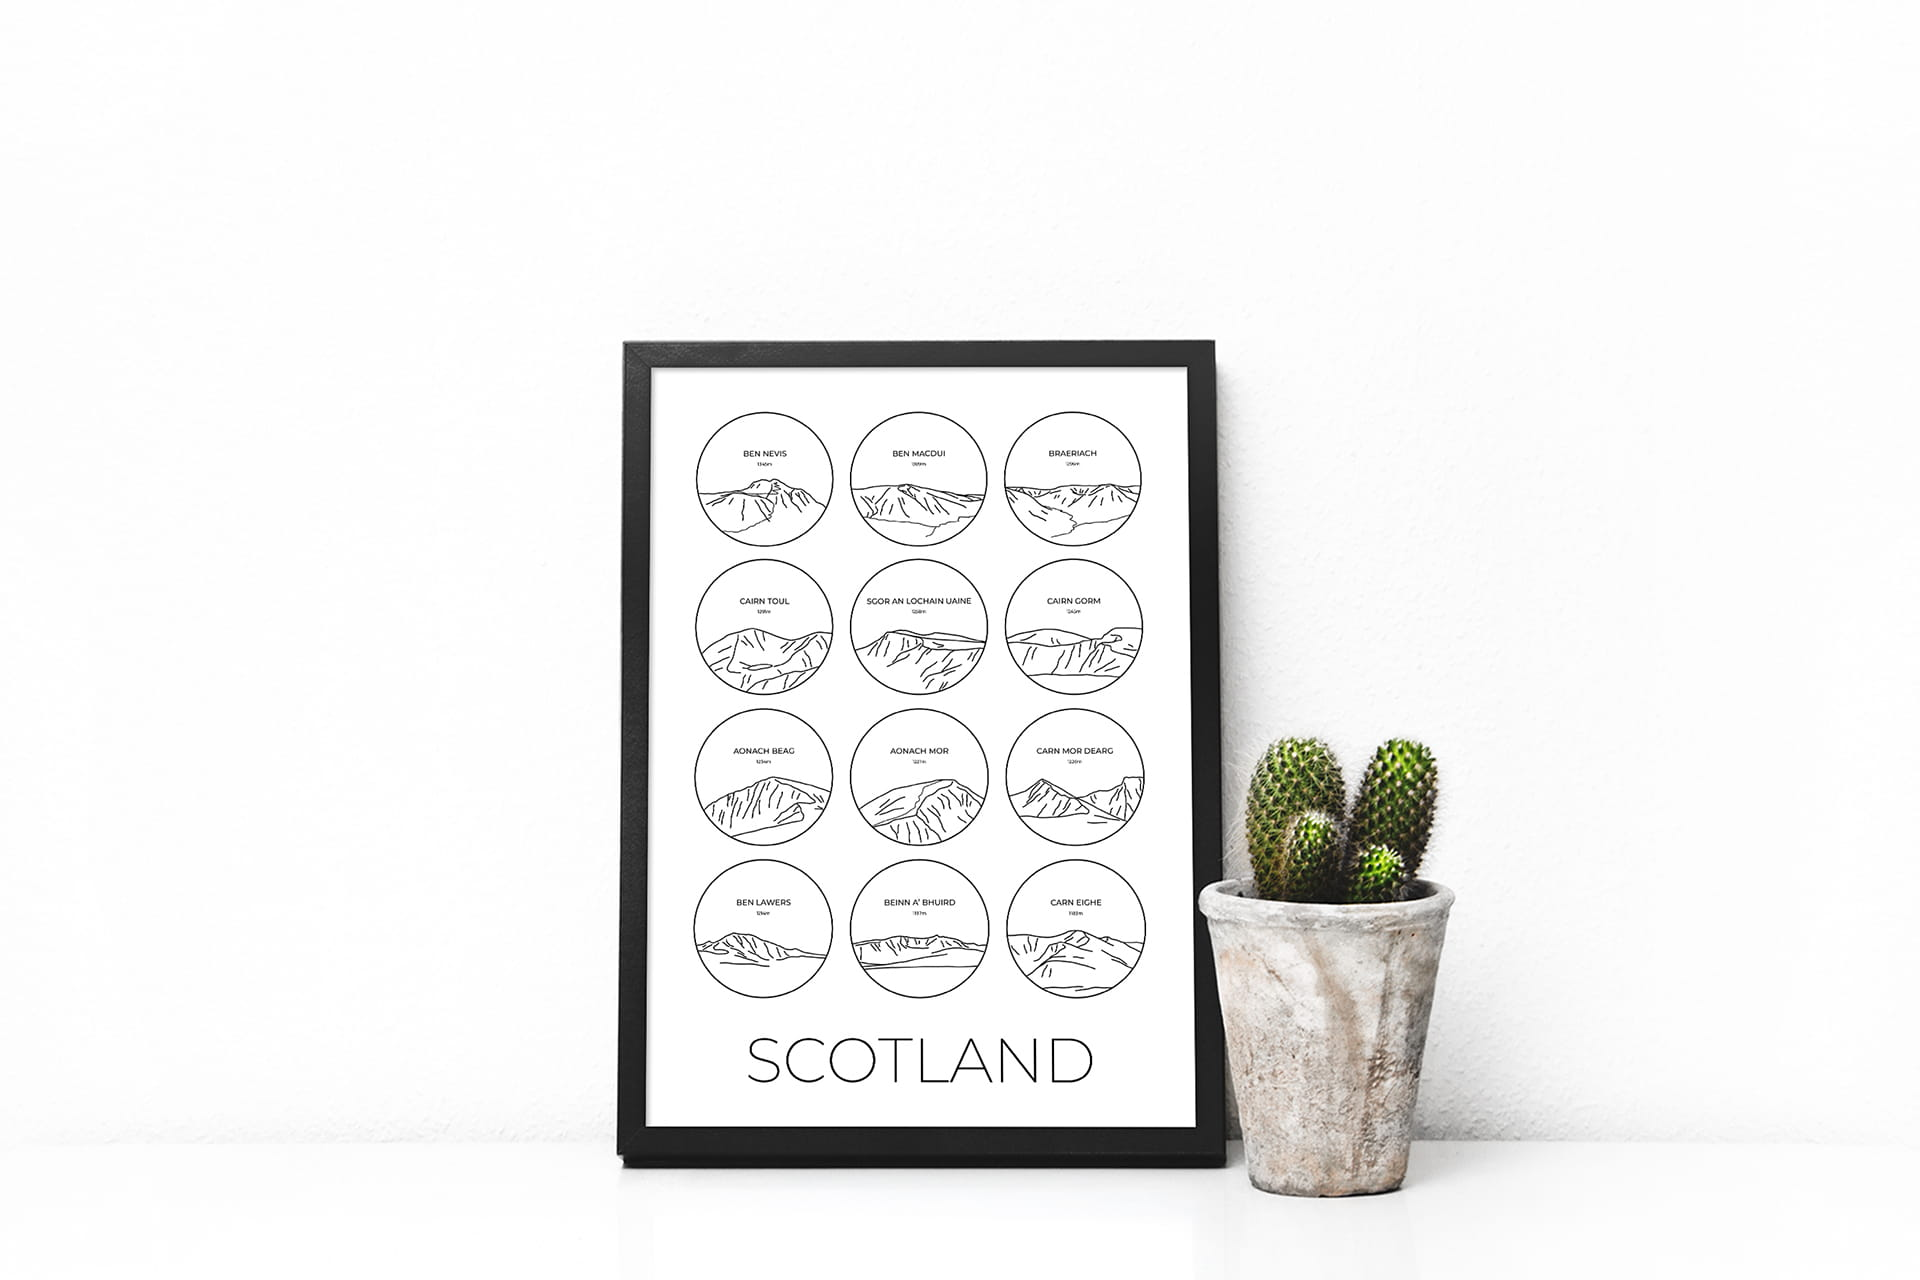 Scotland Mountains collage line art print in a picture frame